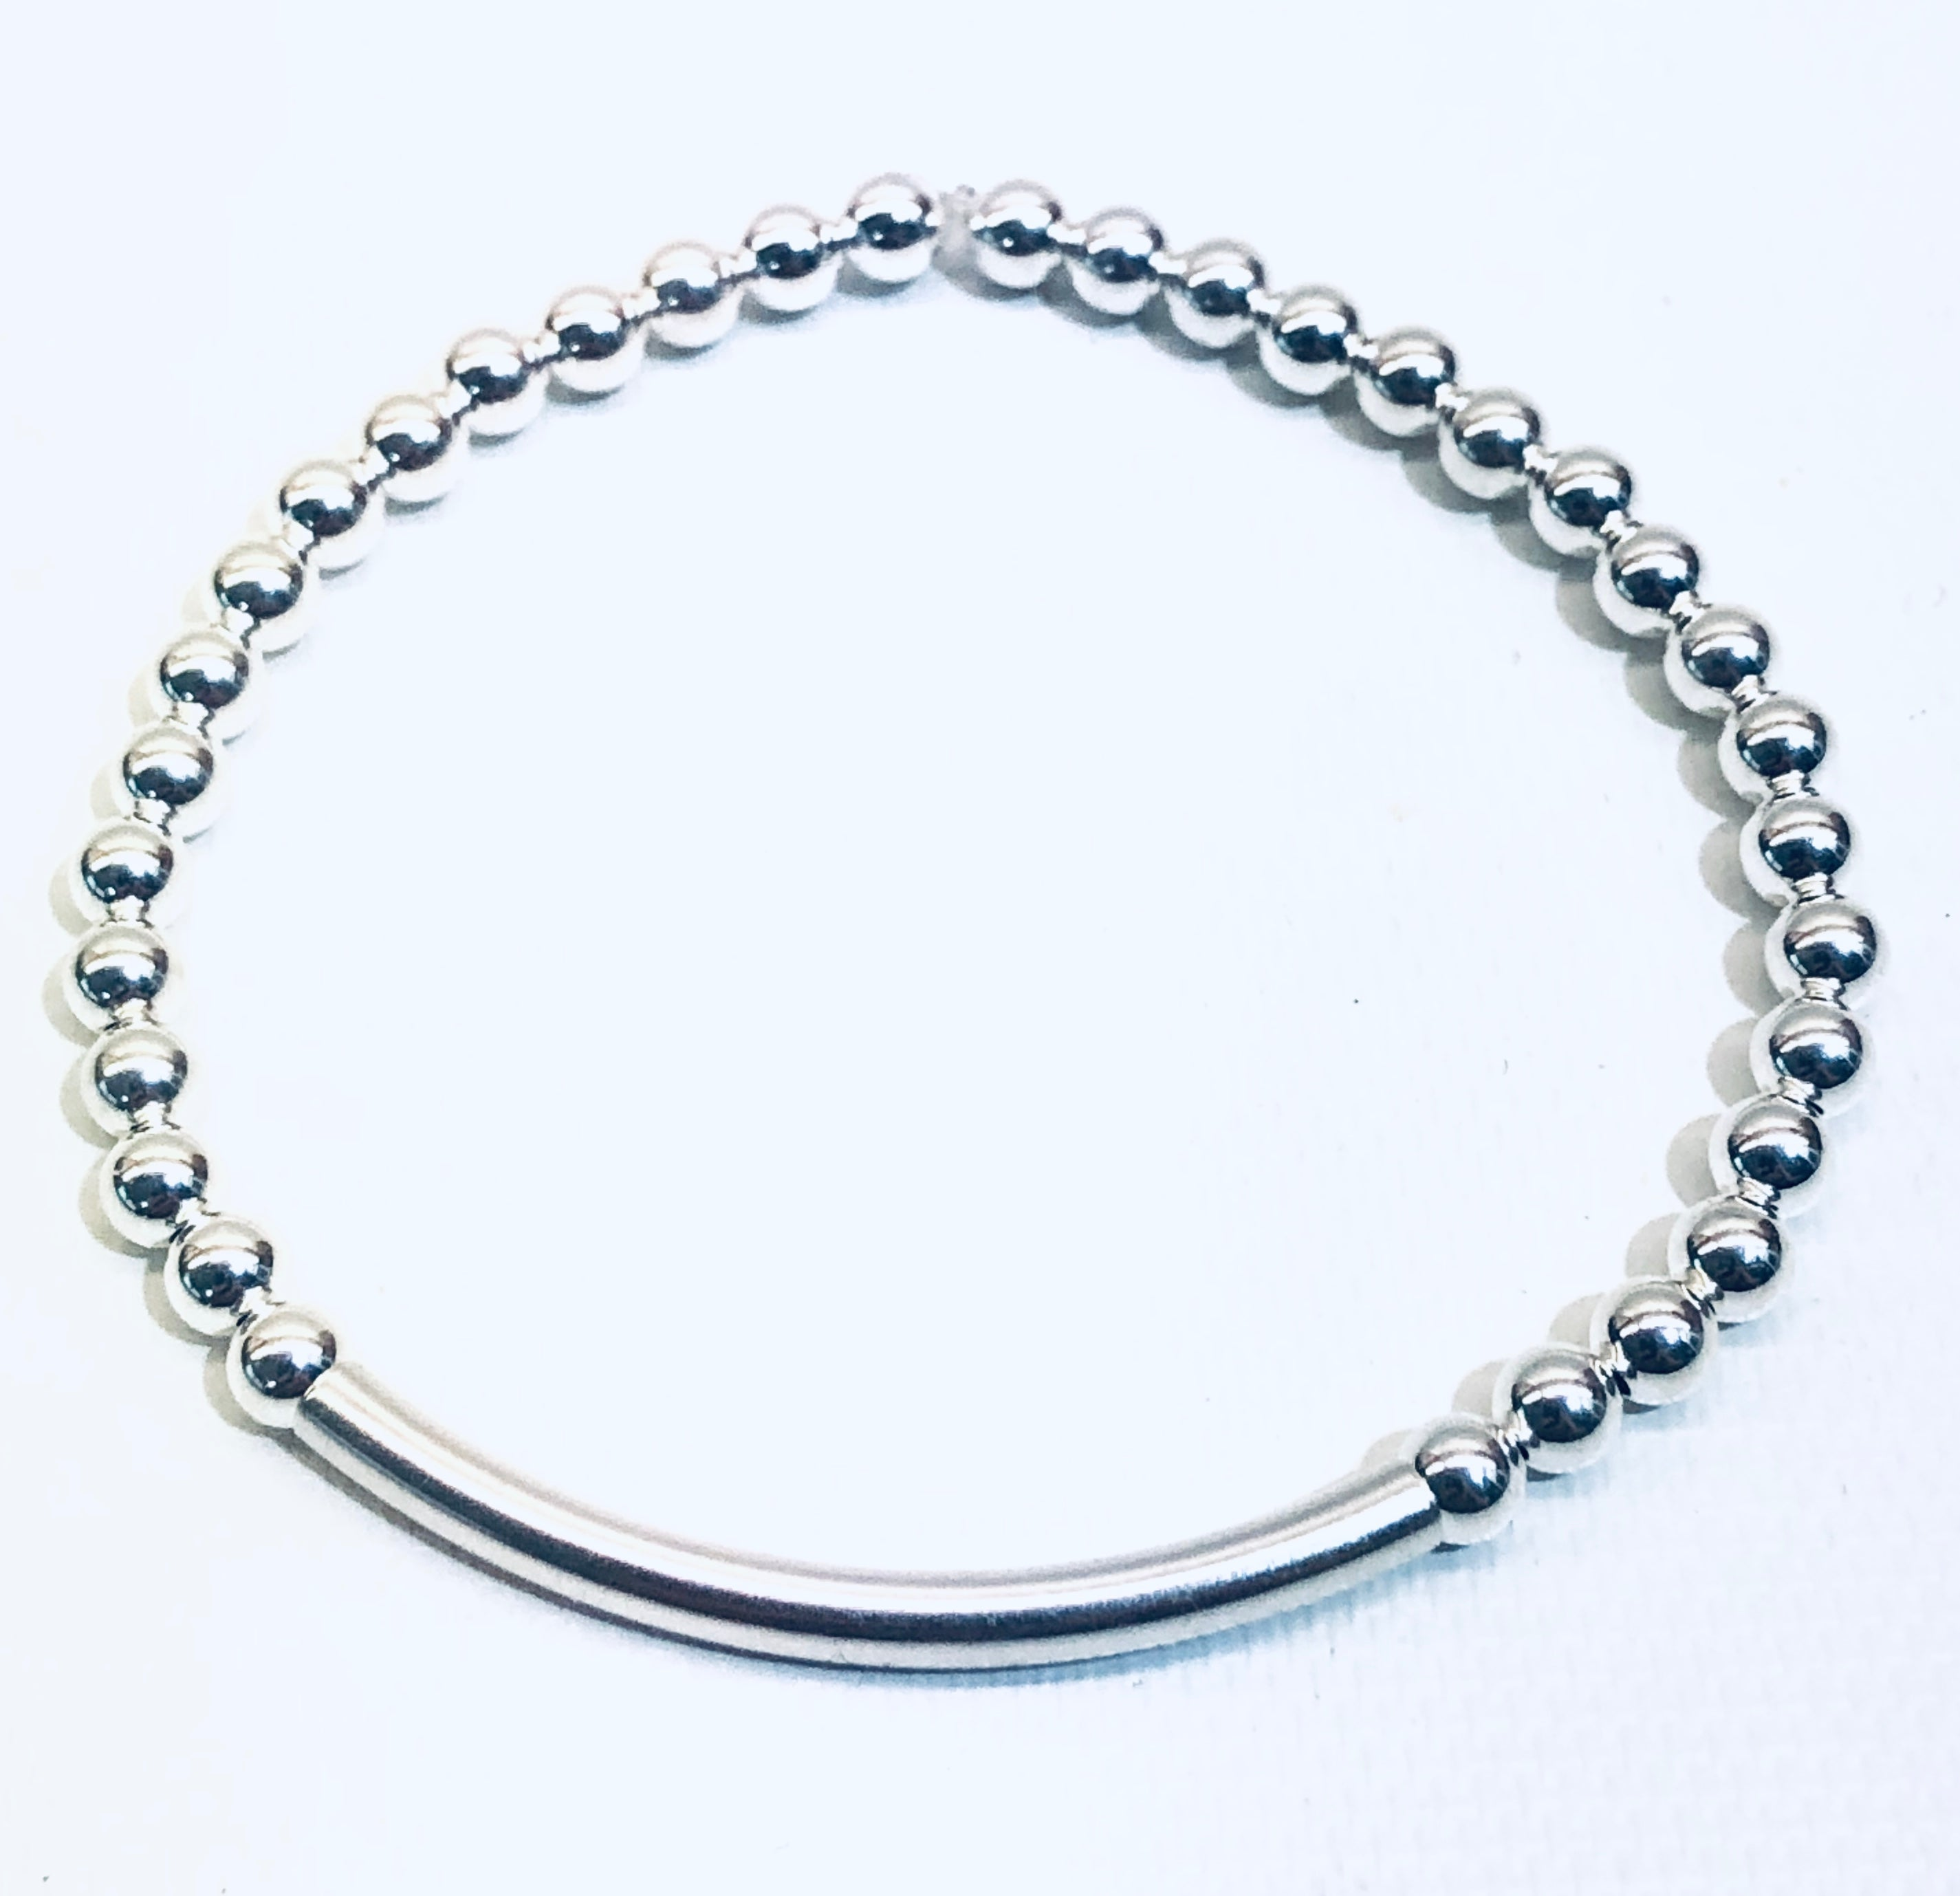 4mm Sterling Silver Bead Bracelet with 4mm Sterling Bar